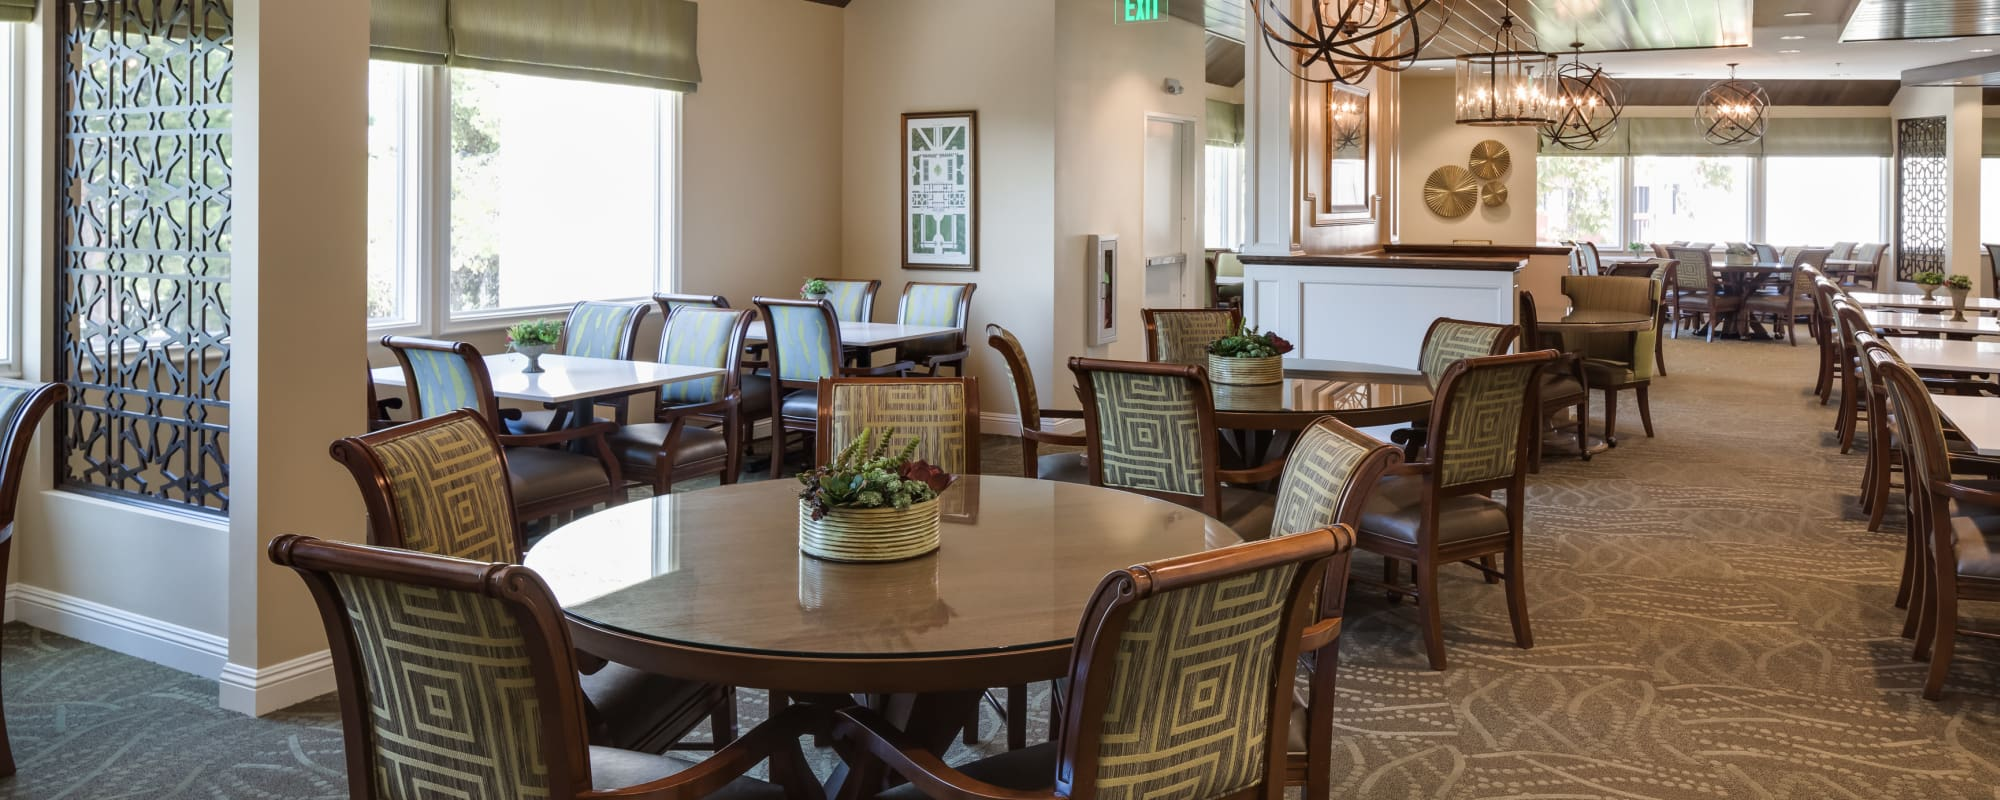 Dining tables for our residents at The Montera in La Mesa, California